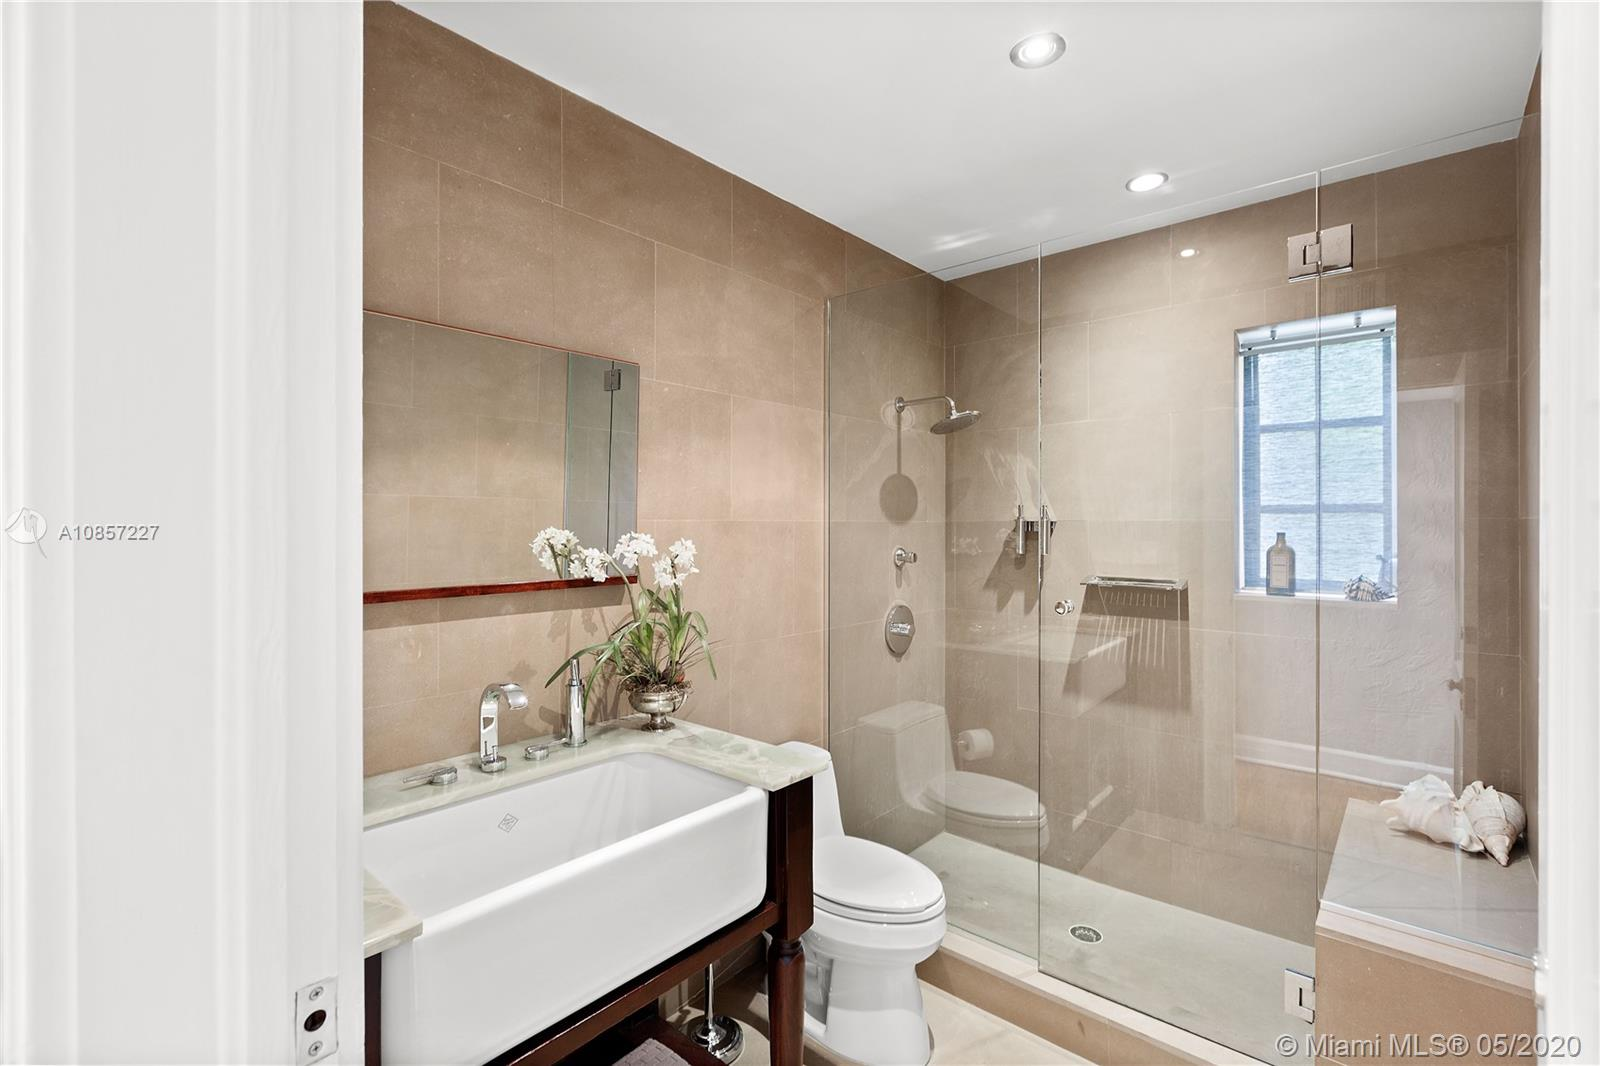 4102 Monserrate St, Coral Gables, Florida 33146, 4 Bedrooms Bedrooms, ,4 BathroomsBathrooms,Residential,For Sale,4102 Monserrate St,A10857227